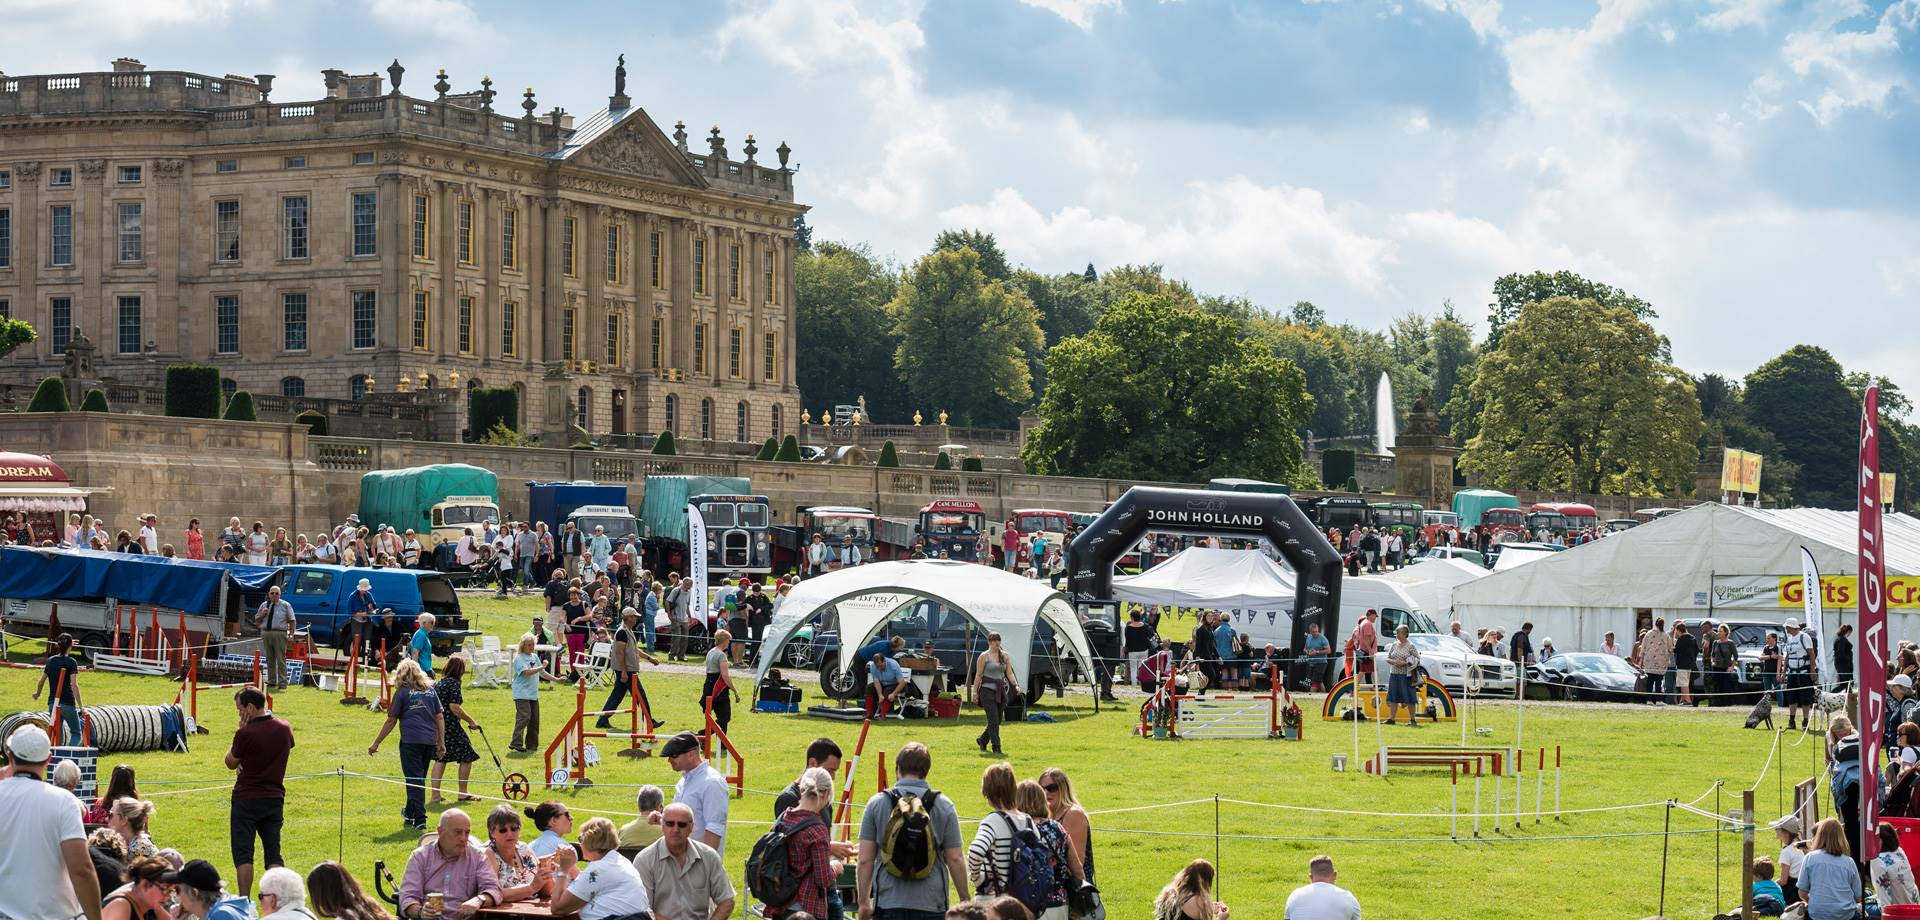 Around the showground at the Chatsworth Country Fair